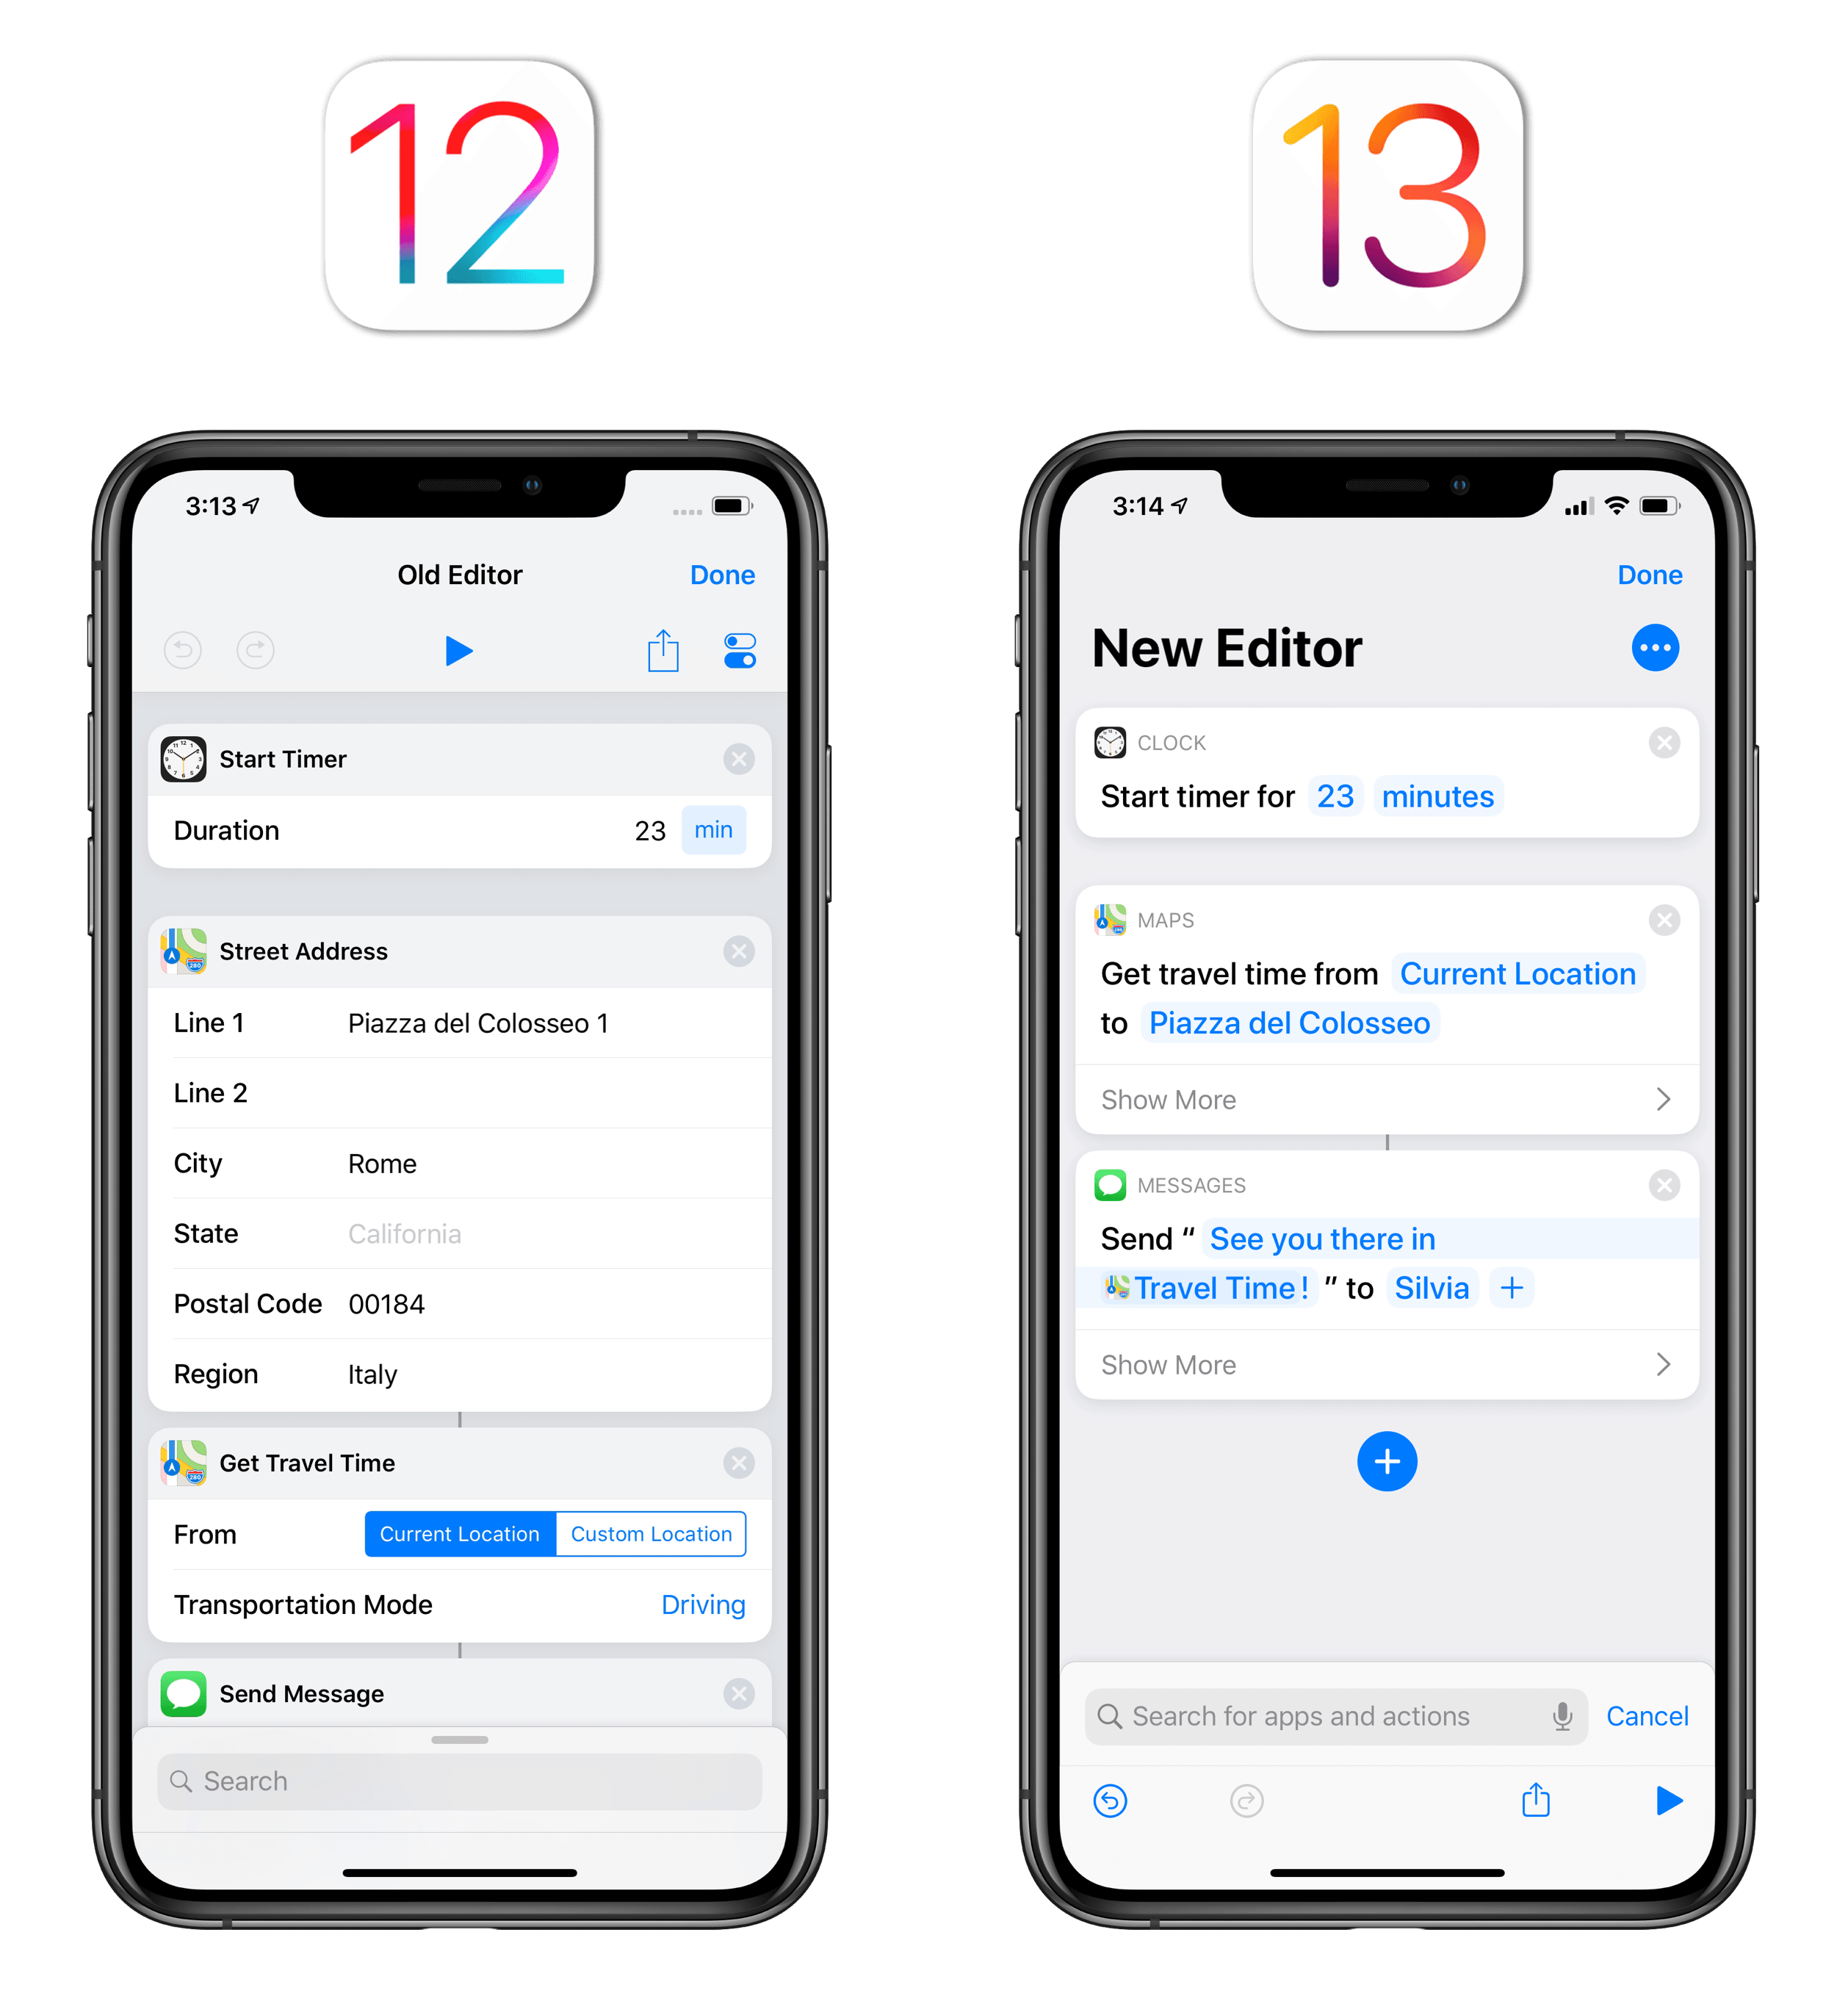 With the new Shortcuts editor, you'll be using fewer actions to achieve the same results.